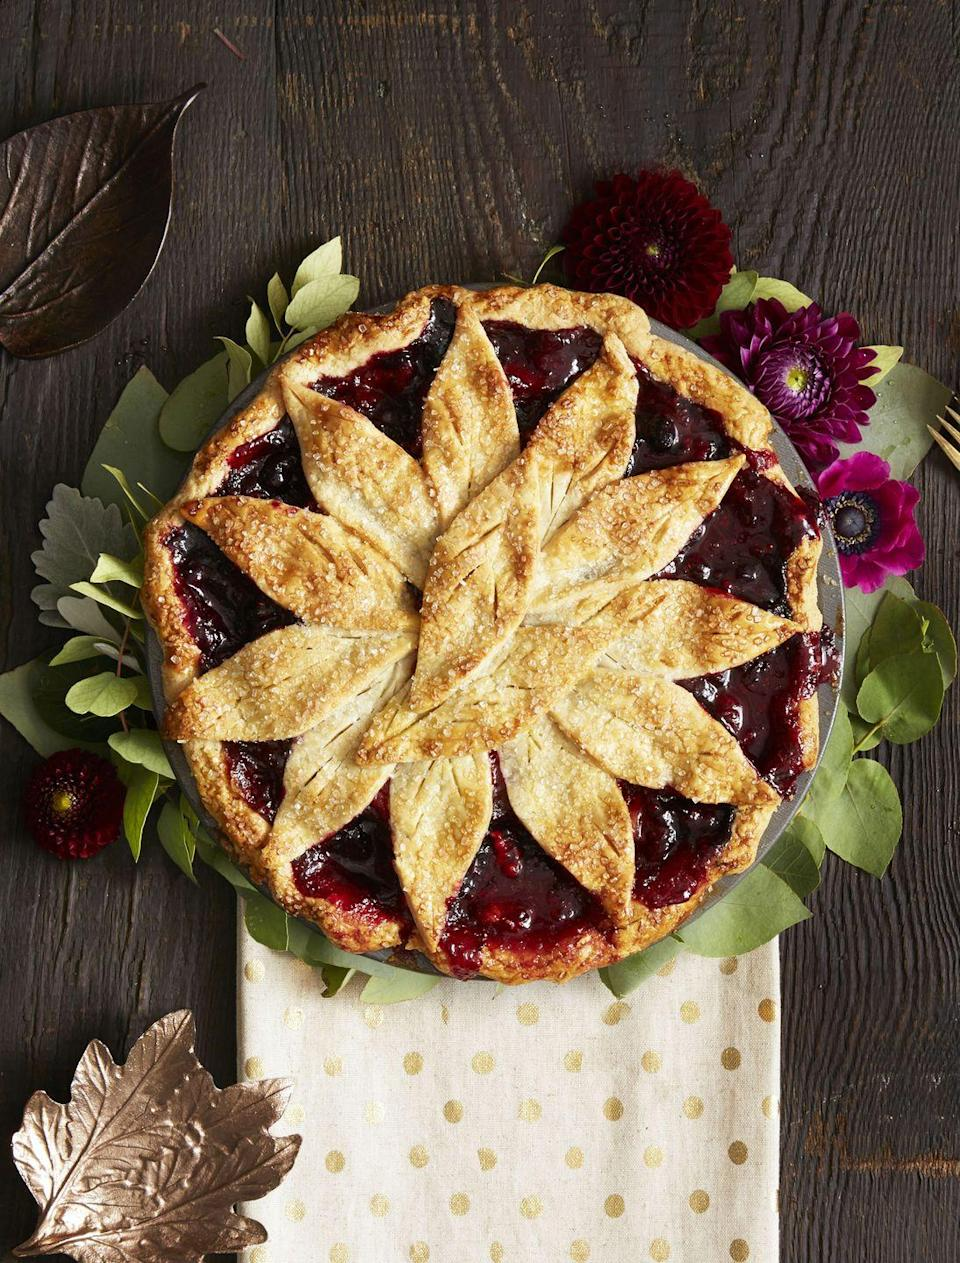 "<p>A trio of frozen berries is responsible for the gorgeous dark hue of this apple pie.</p><p><a href=""https://www.goodhousekeeping.com/food-recipes/dessert/a35188/very-berry-apple-pie/"" rel=""nofollow noopener"" target=""_blank"" data-ylk=""slk:Get the recipe for Very Berry Apple Pie »"" class=""link rapid-noclick-resp""><em>Get the recipe for Very Berry Apple Pie »</em></a></p>"